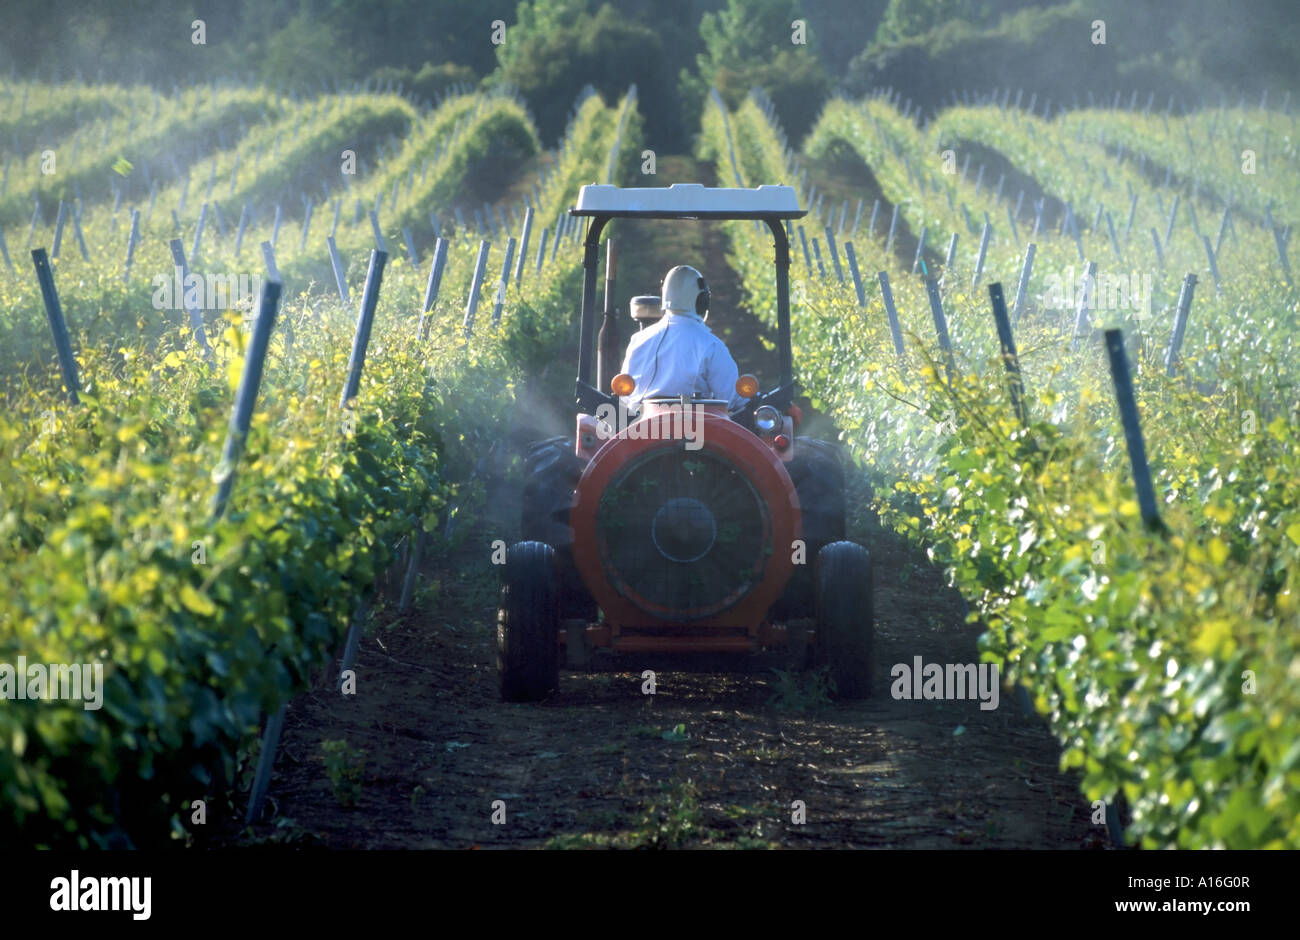 spraying pesticides in vineyards Anderson Valley CA - Stock Image